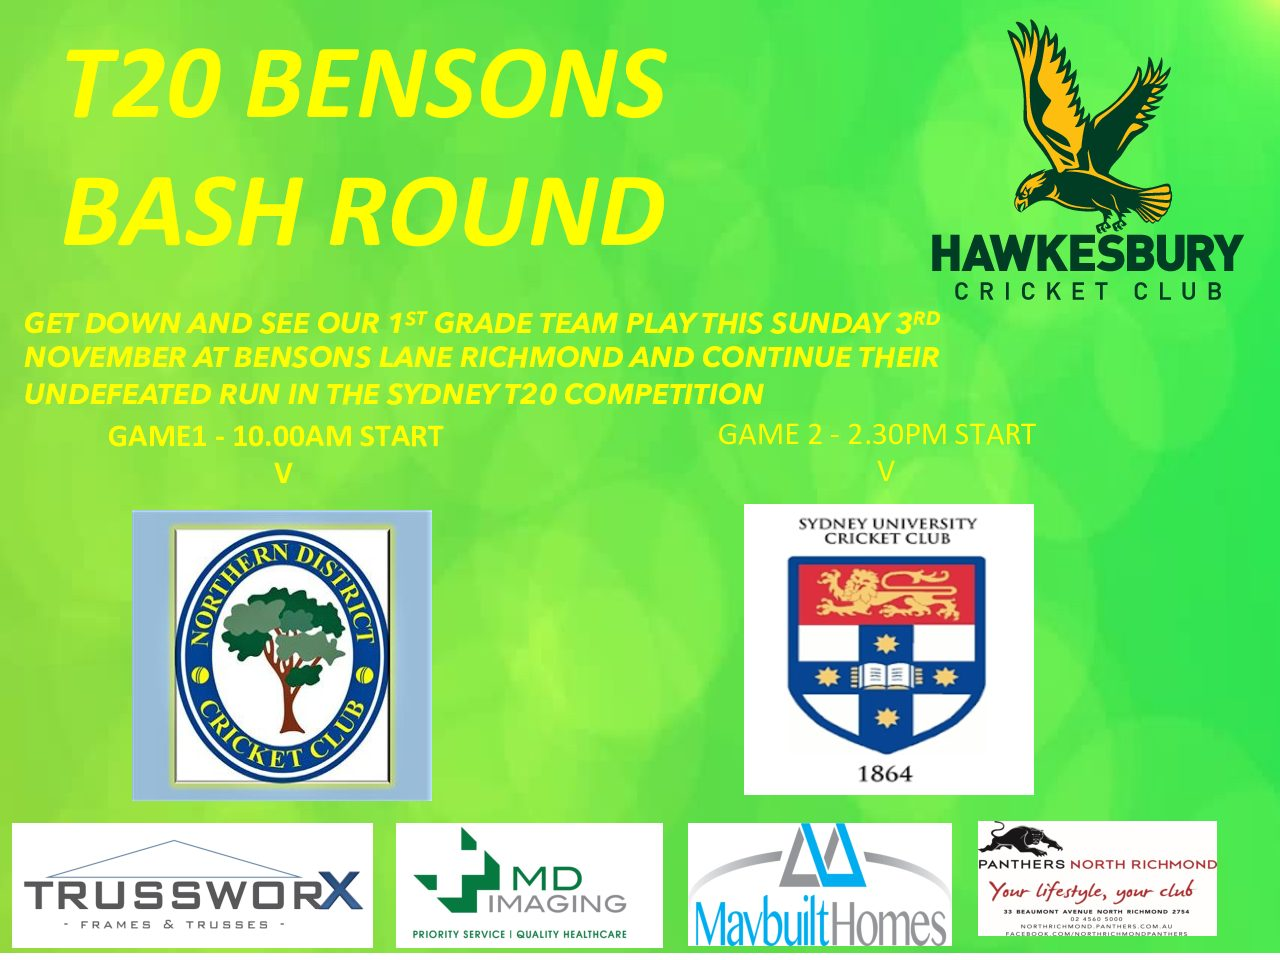 HAWKS IN T20 DOUBLE HEADER THIS SUNDAY 3RD NOVEMBER